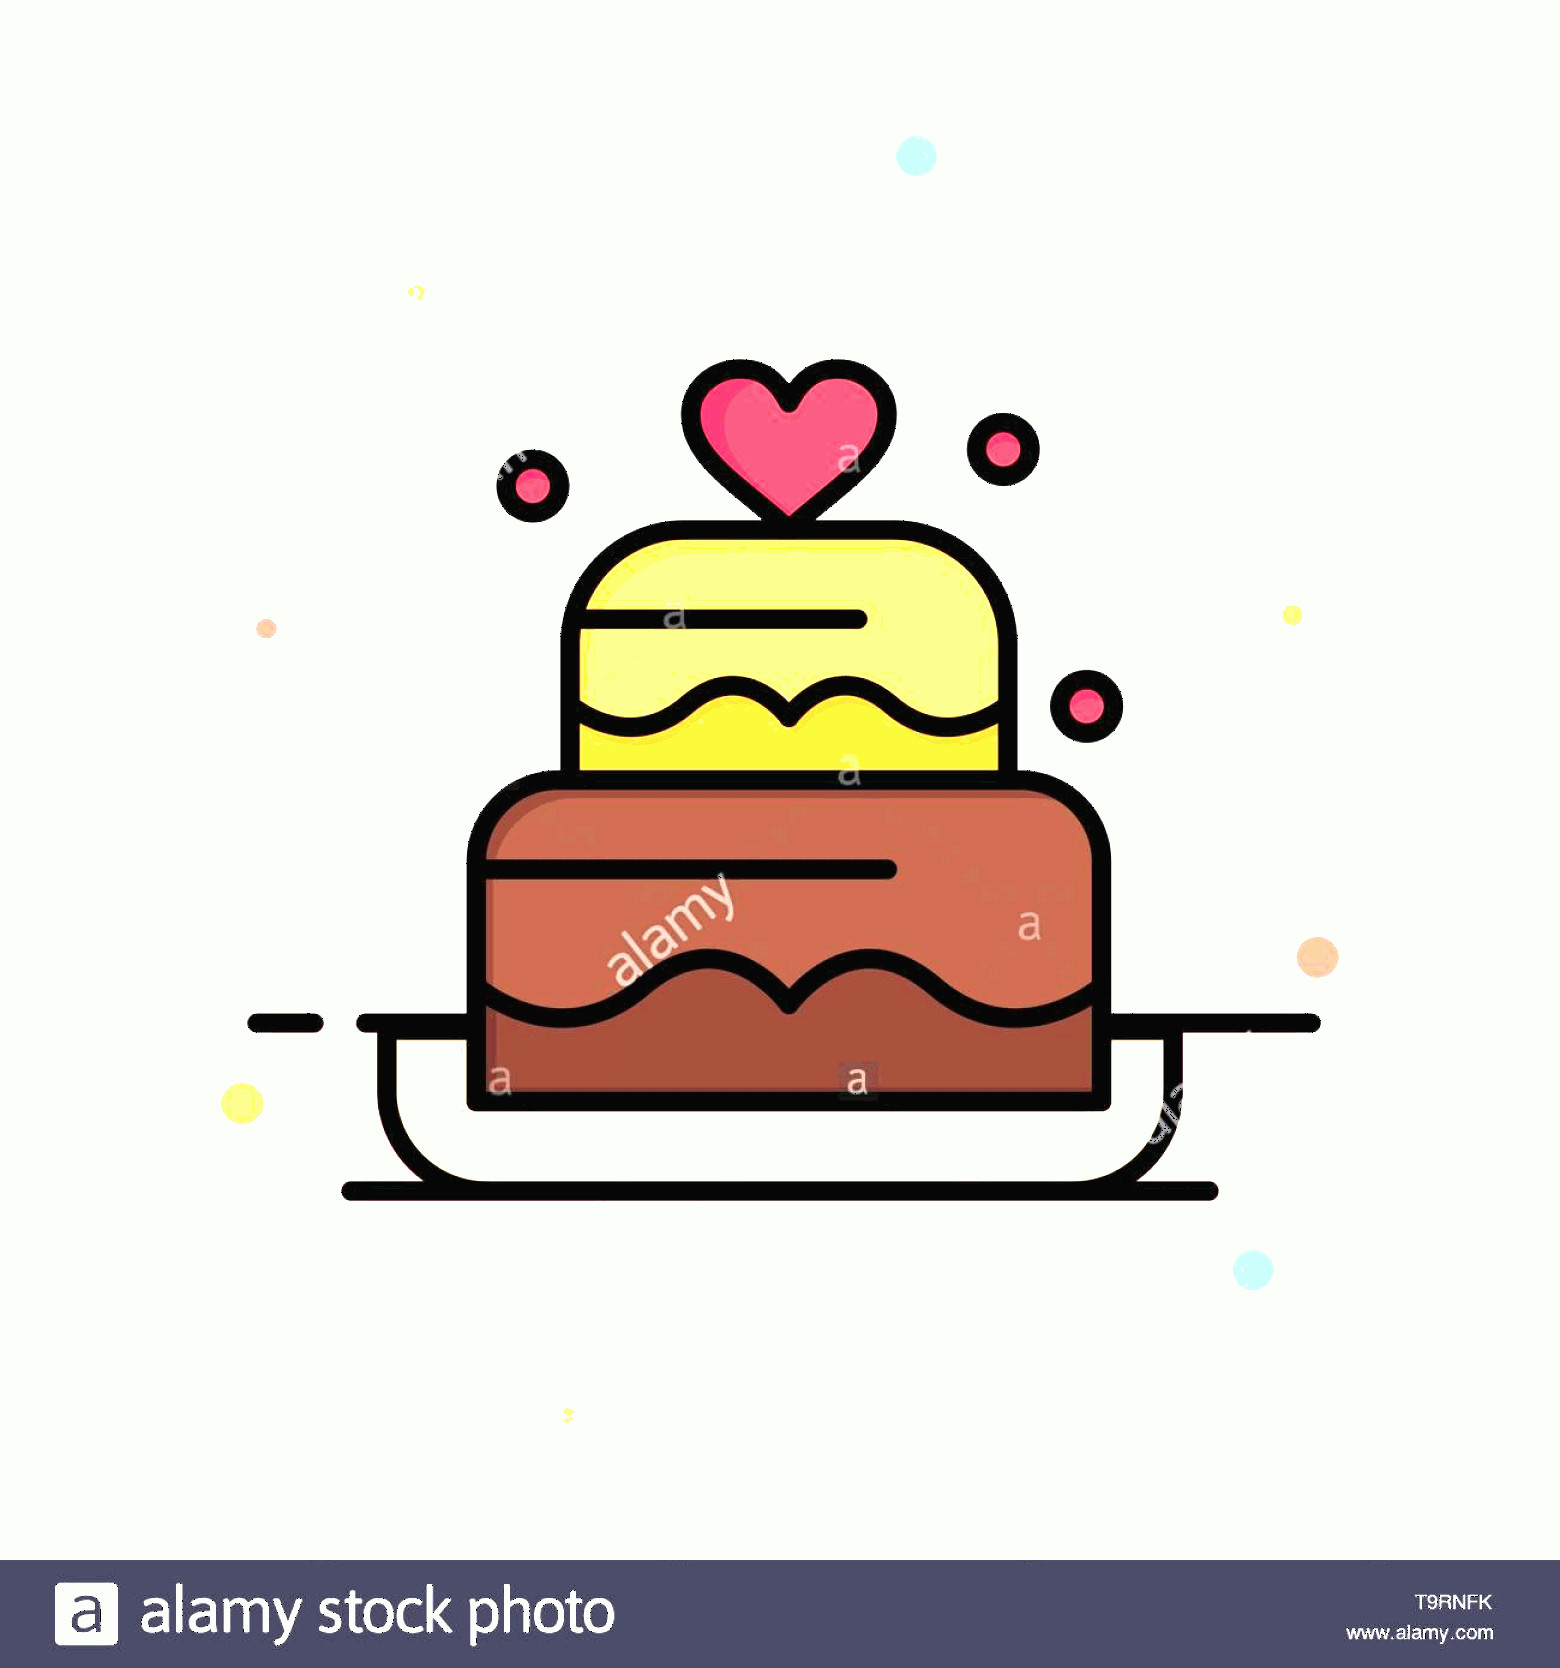 Vector Abstract Art Cake: Cake Love Heart Wedding Abstract Flat Color Icon Template Image